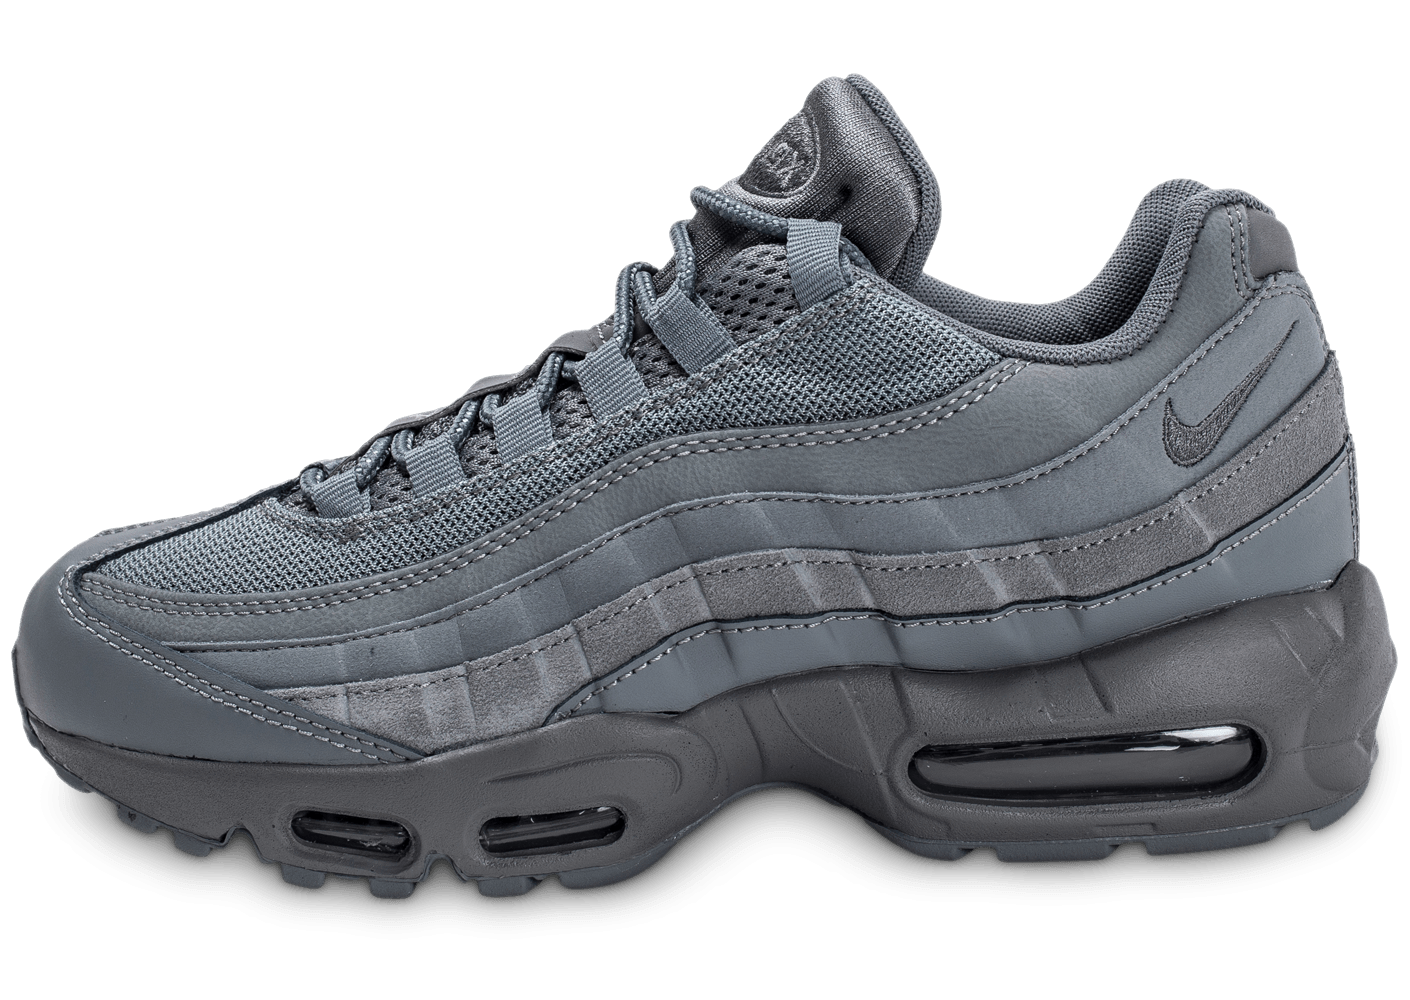 nike air max 95 essential grise chaussures homme chausport. Black Bedroom Furniture Sets. Home Design Ideas